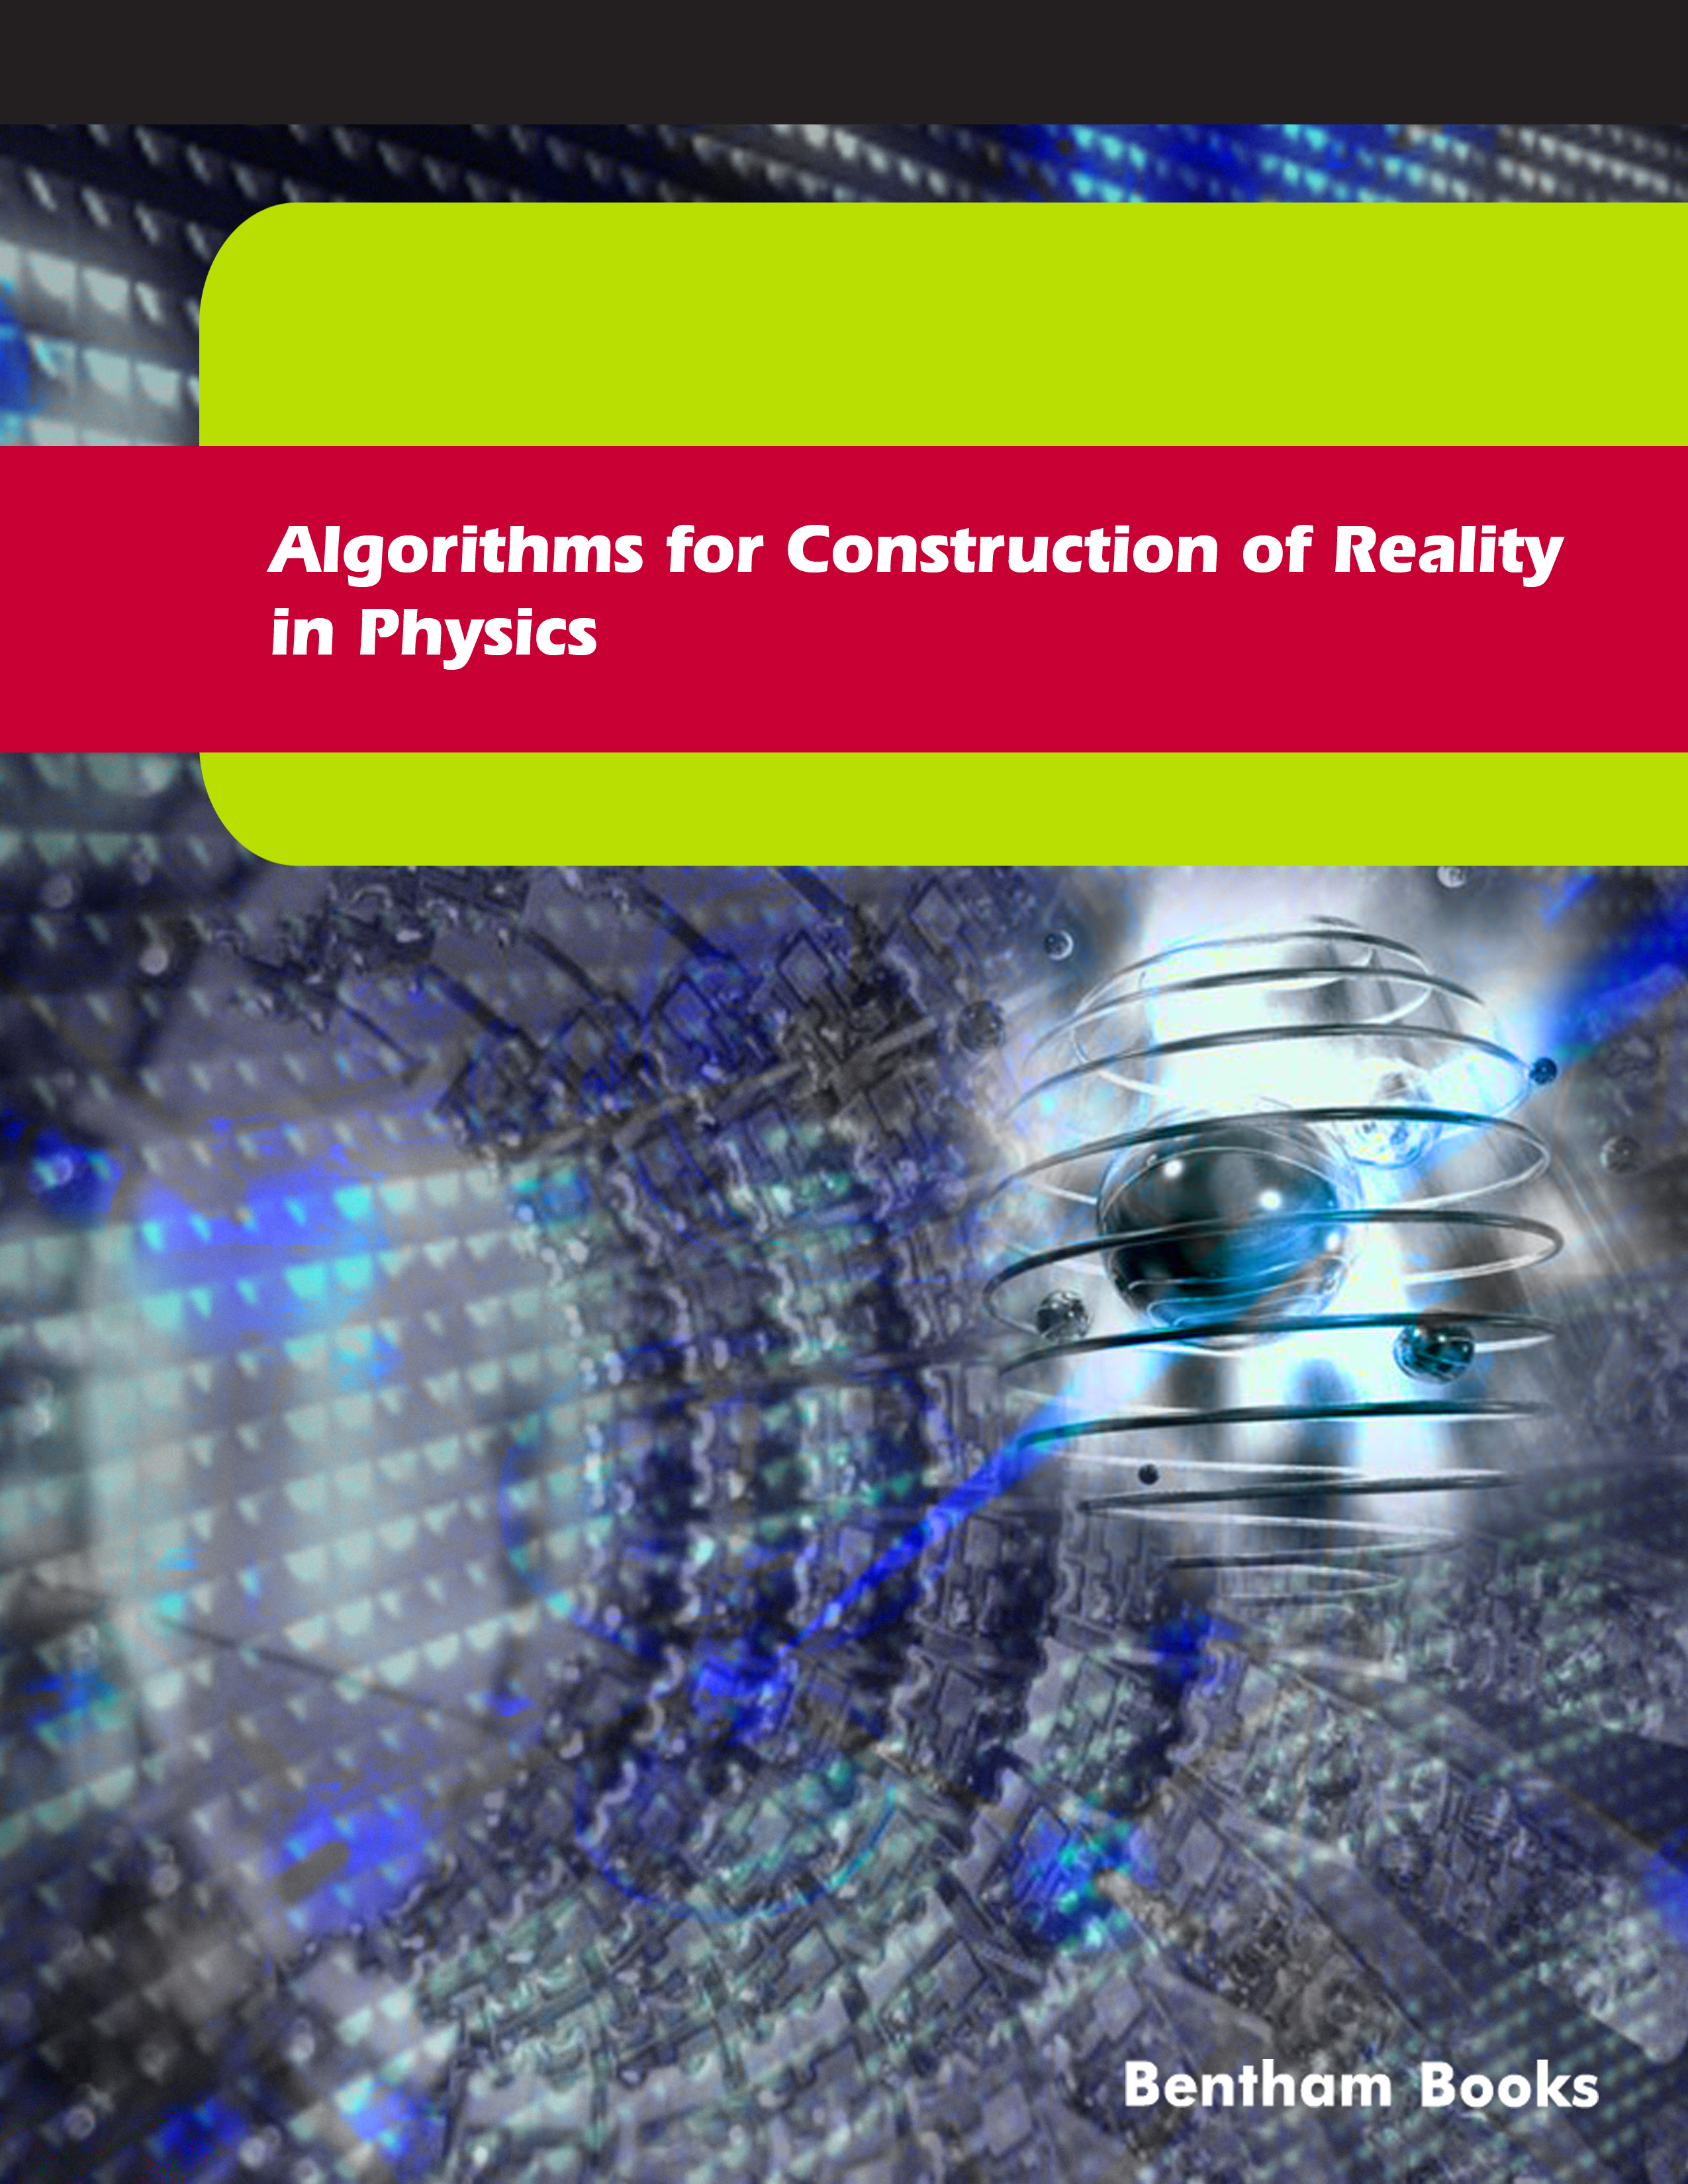 Algorithms for Construction of Reality in Physics